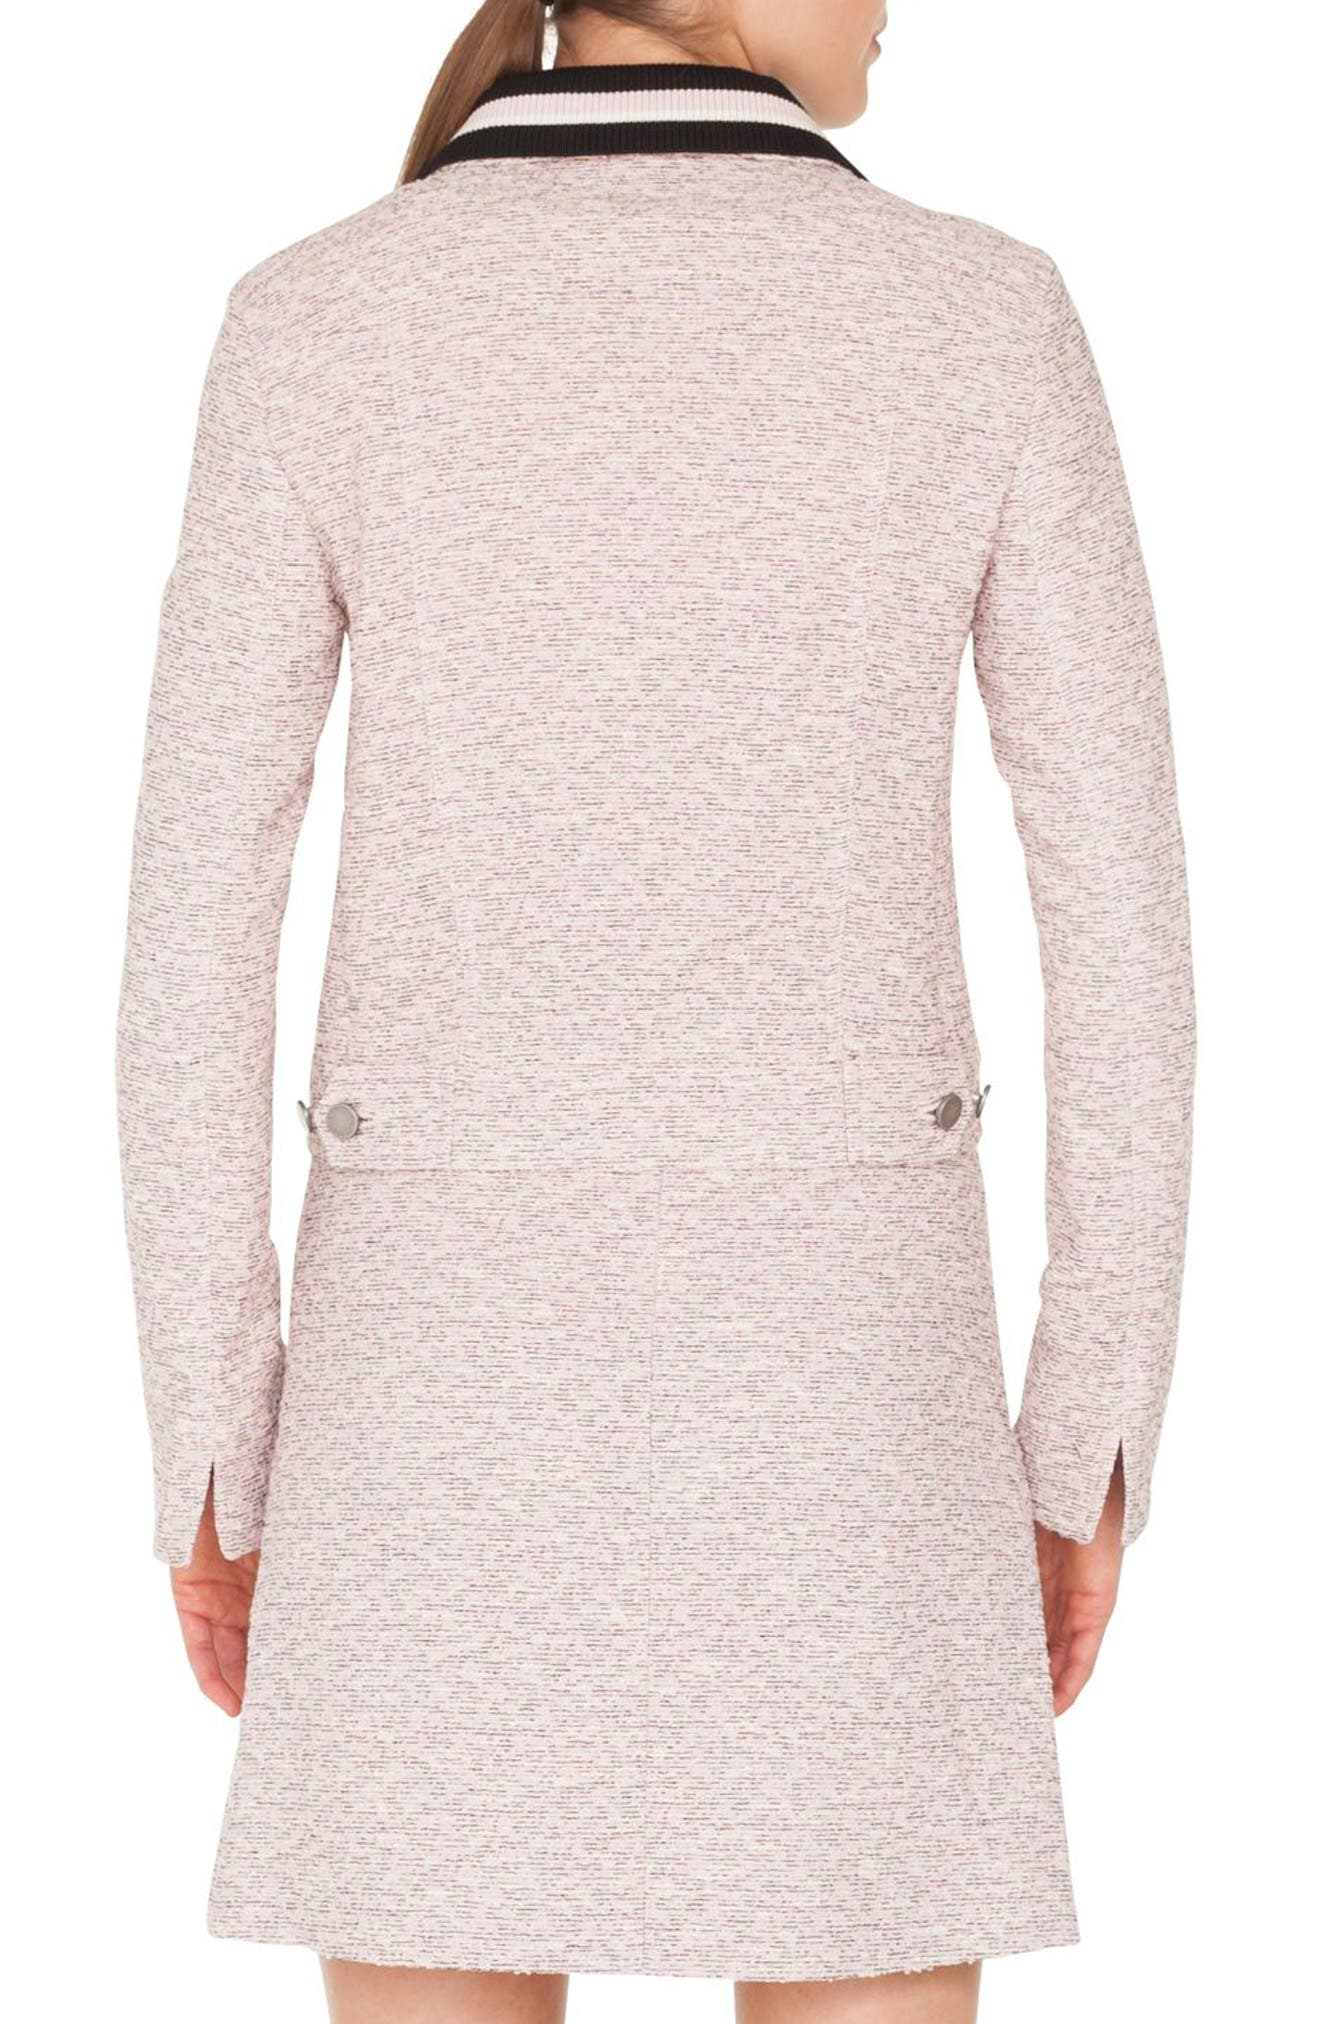 Button Front Tweed Jacket with Detachable Knit Collar,                             Alternate thumbnail 2, color,                             ROSE - CREAM -